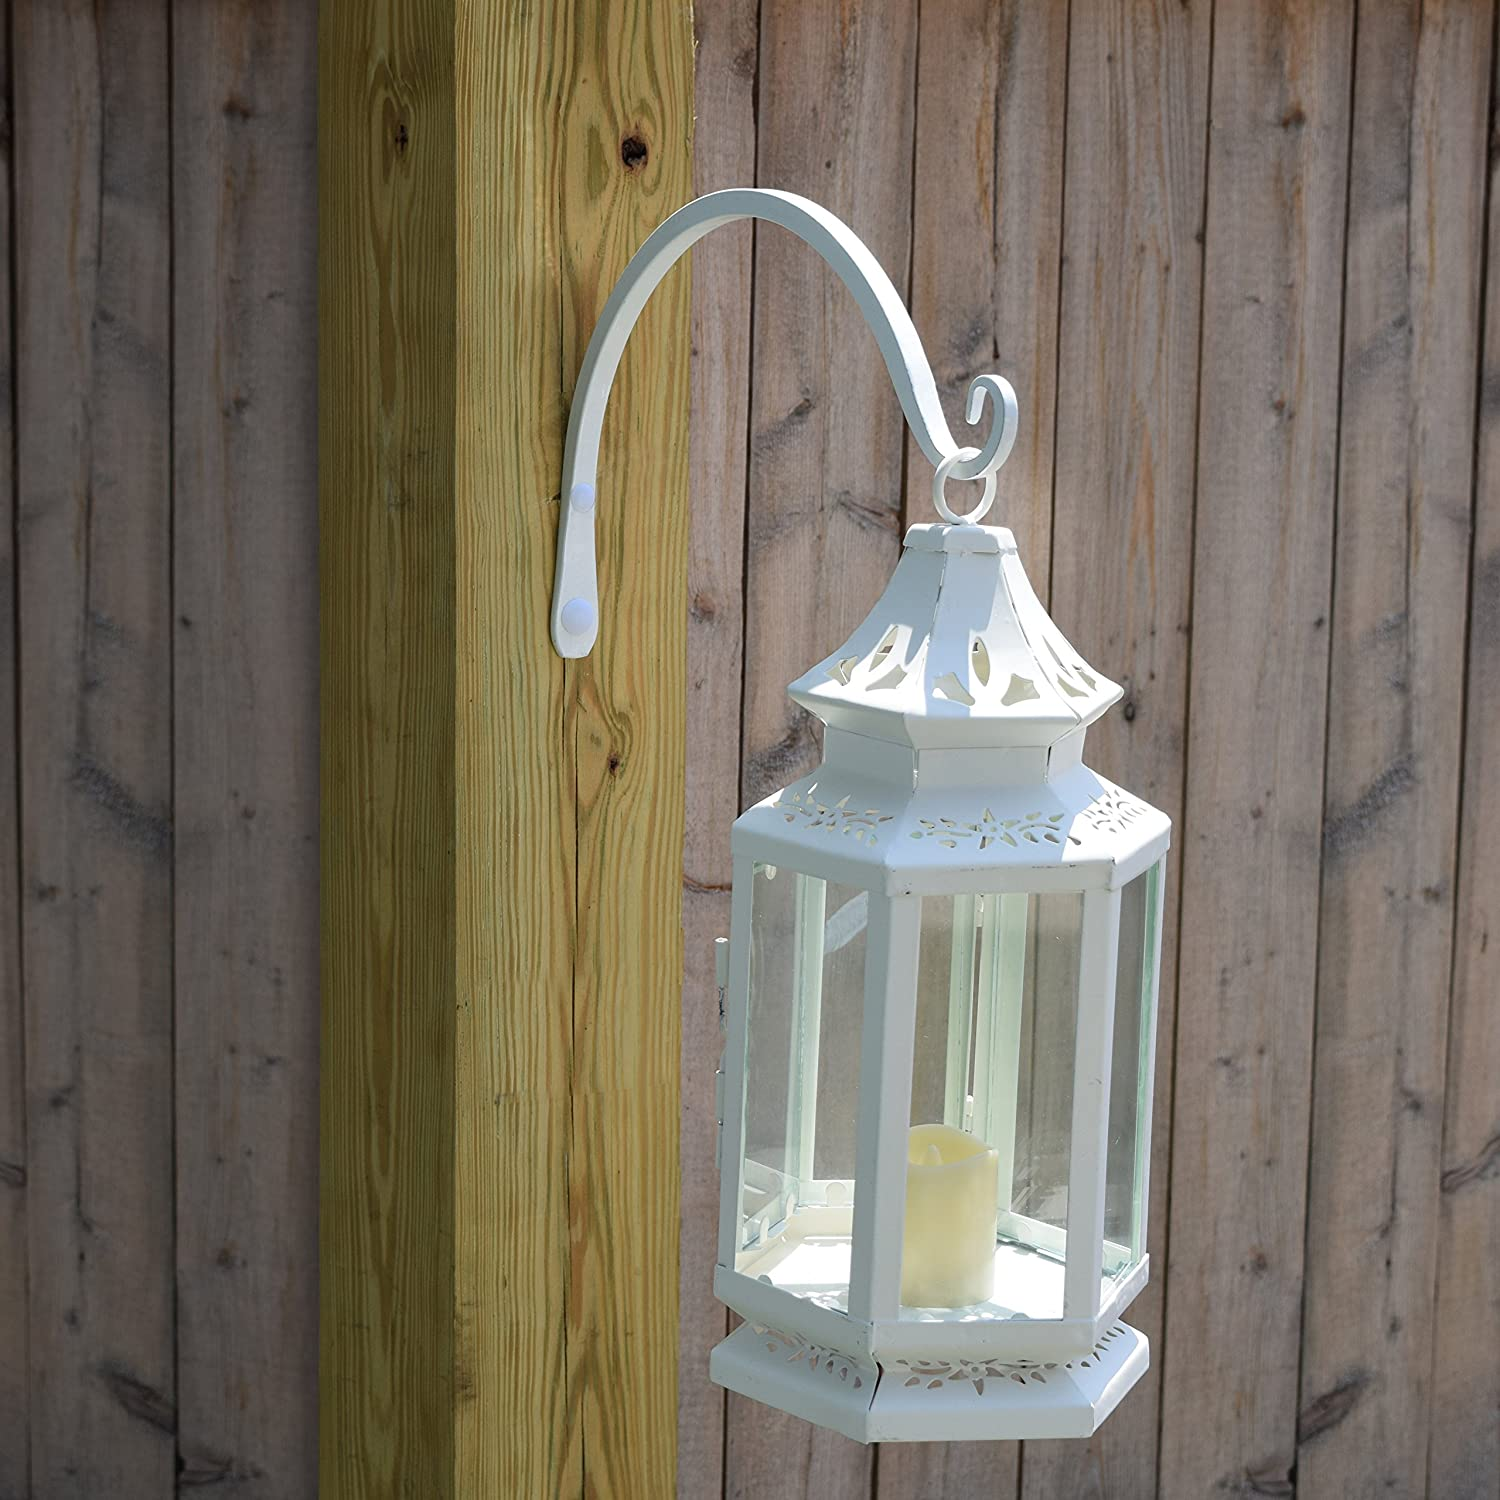 Planters 8.5 Inch Gray Bunny GB-6863B Hand Forged Curved Hook Lanterns 2-Pack White Wind Chimes As Wall Brackets and More! for Bird Feeders